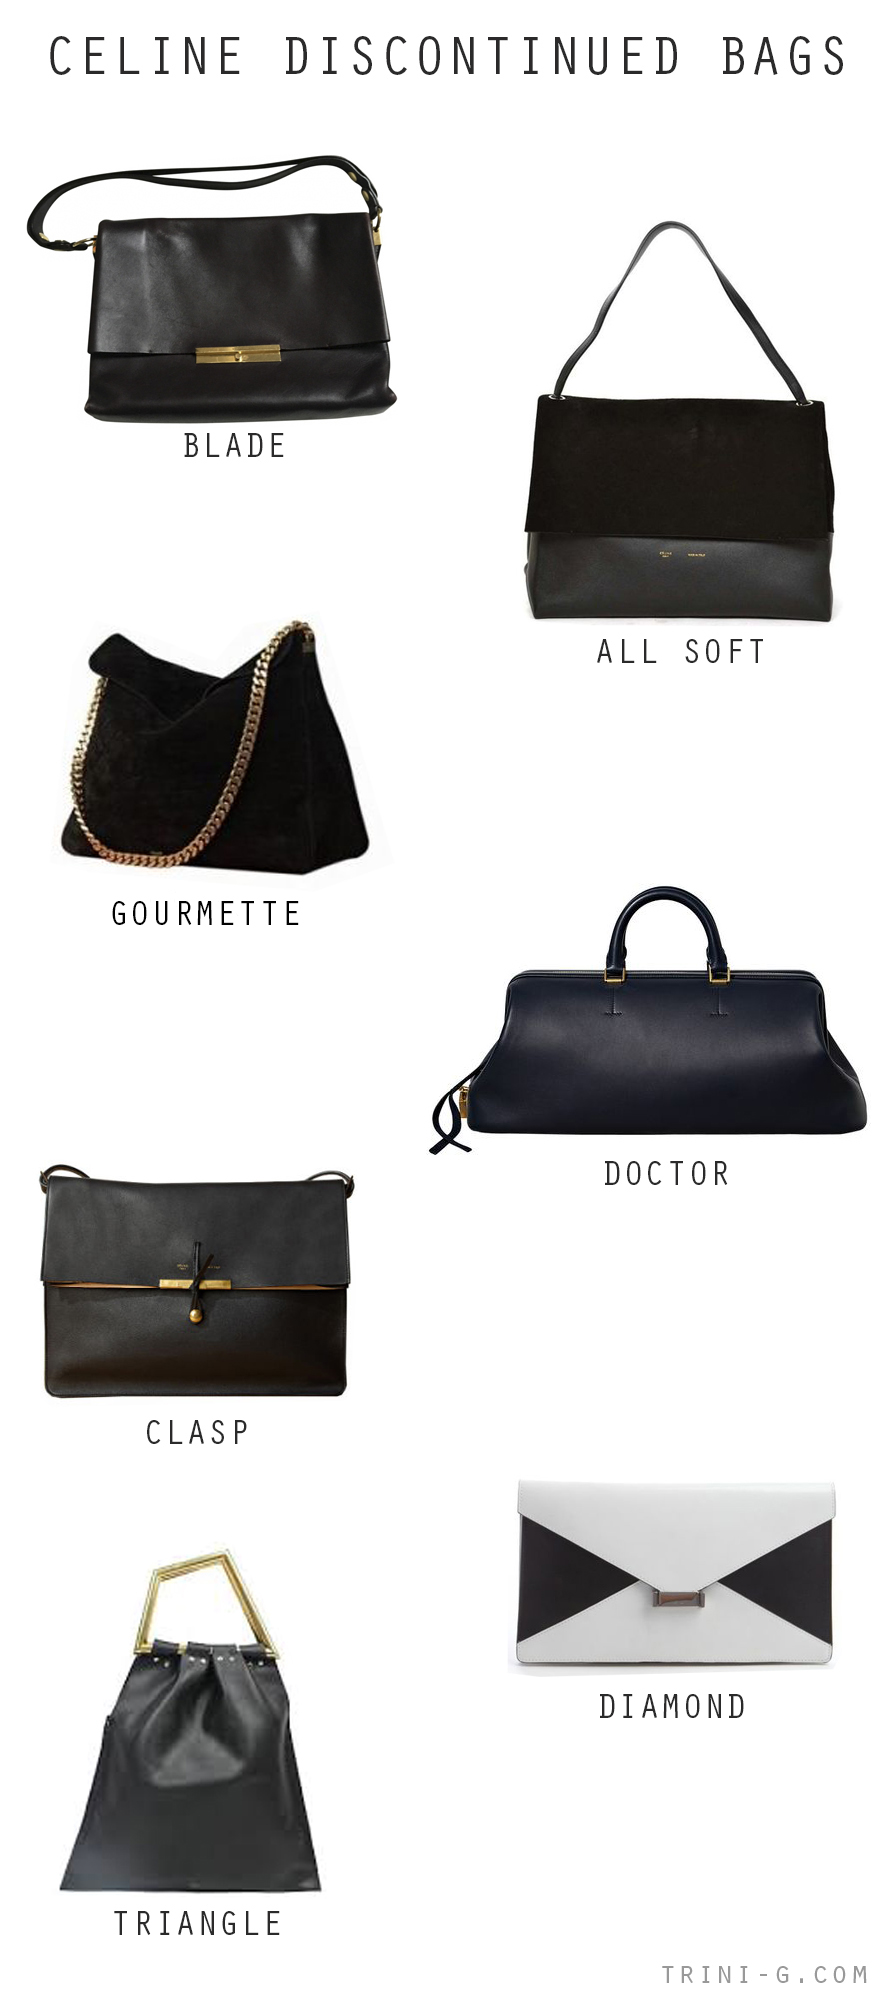 rini blog| Celine discontinued bags